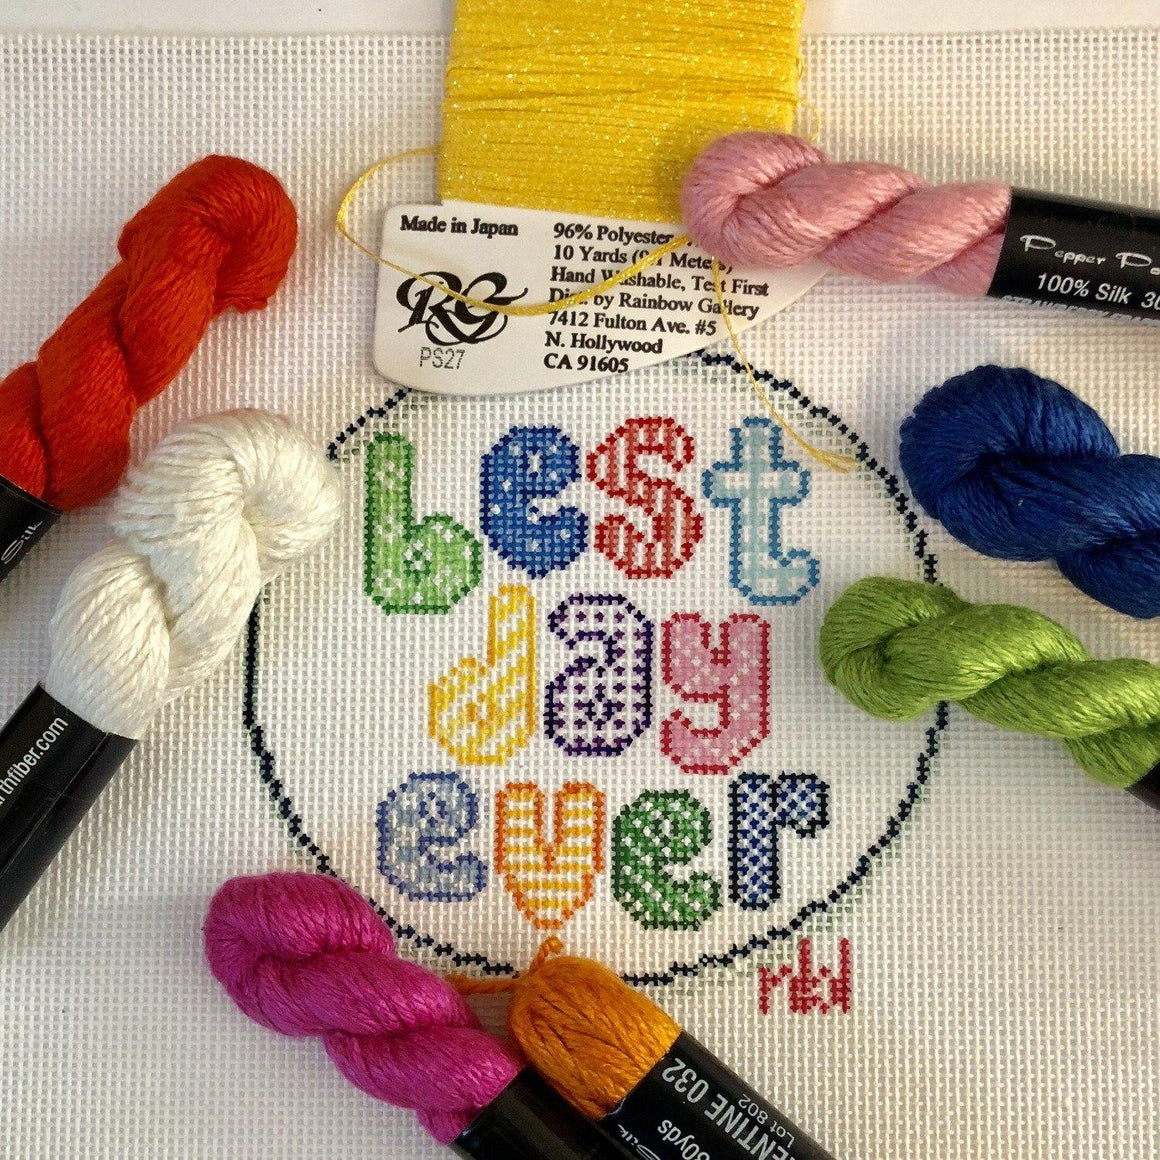 Best Day Ever Canvas - Needlepoint by Laura, LLC